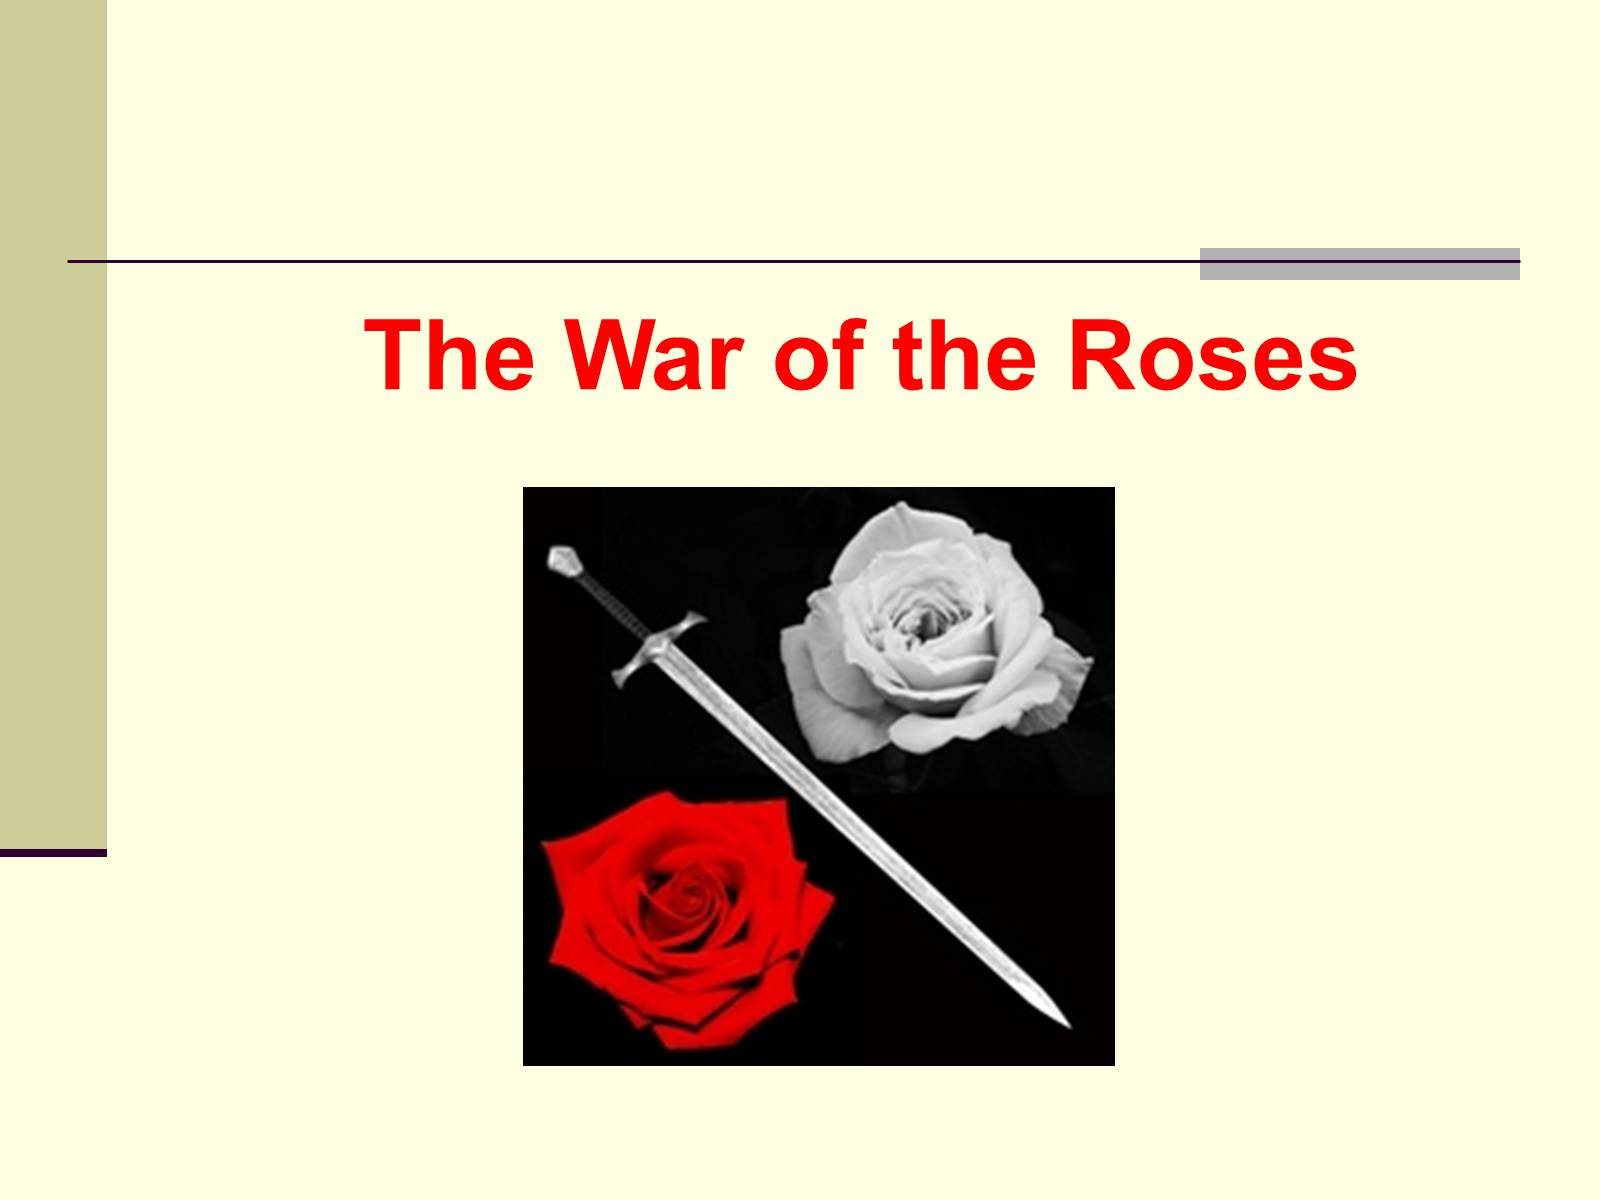 an overview of the war of roses between 1455 and 1485 Key players involved with the wars of the roses as the war involved overview of the dates part in the outcome of the wars of the roses 1455.